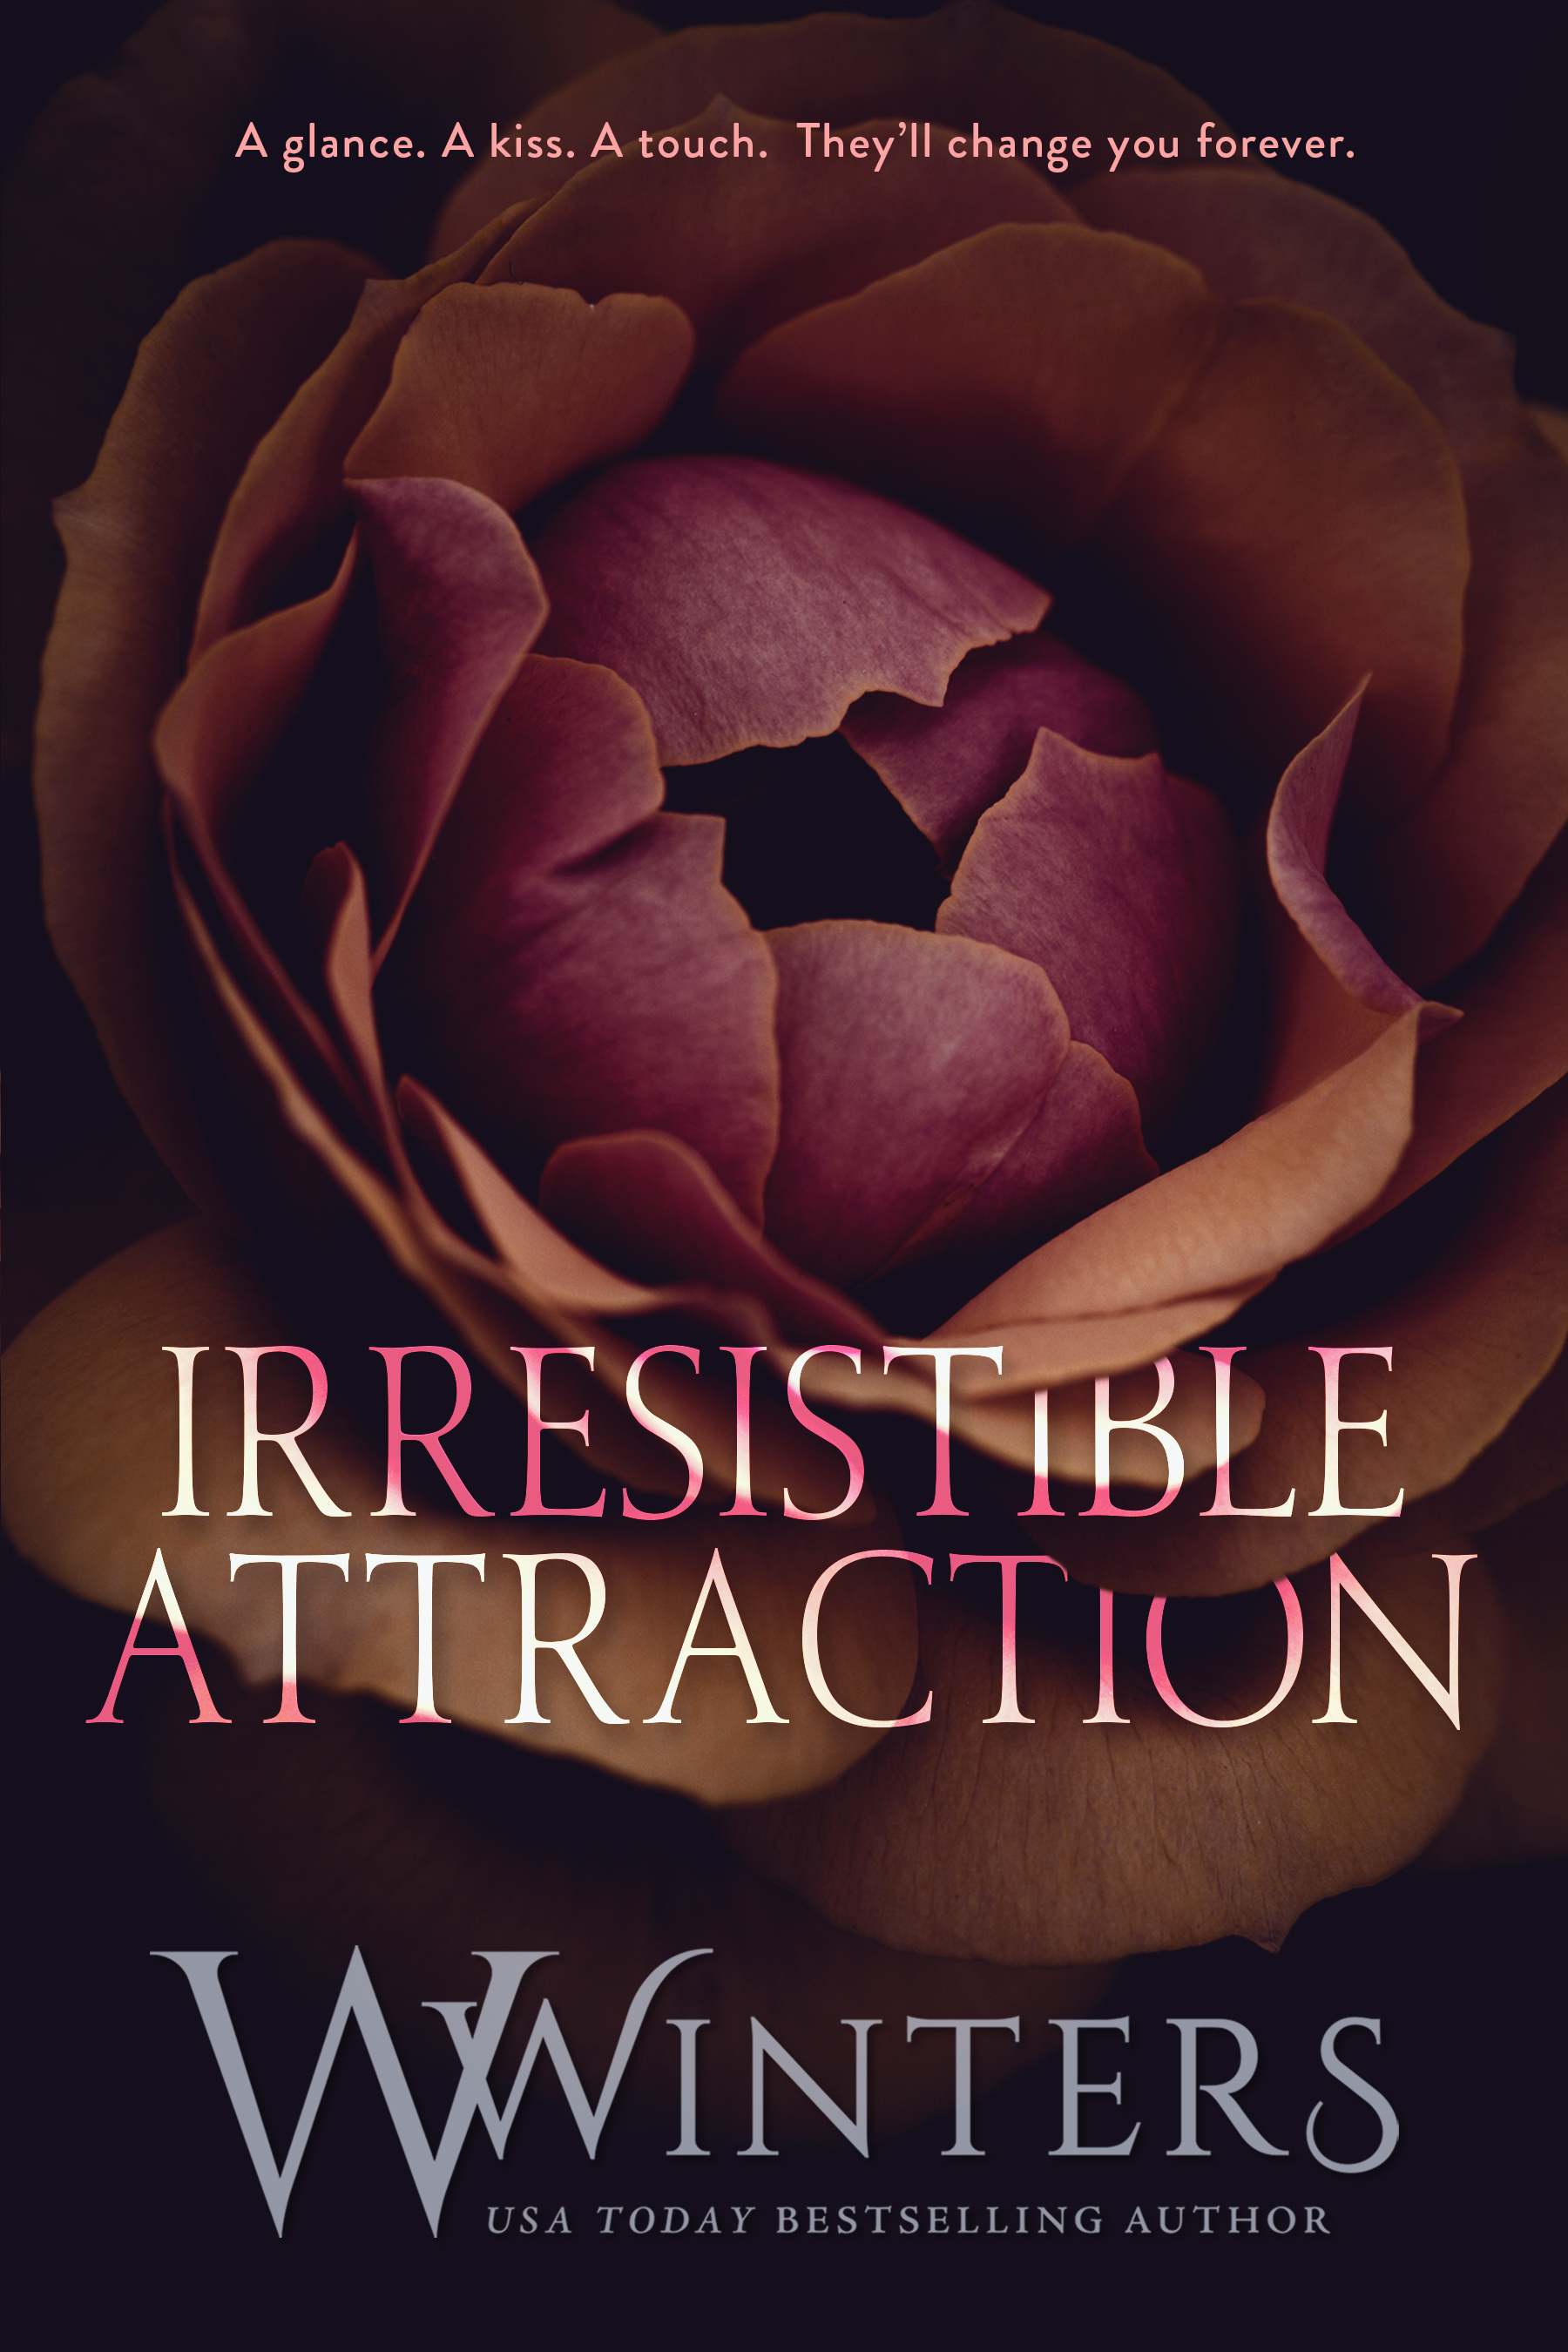 IRRESISTIBLE_ATTRACTION